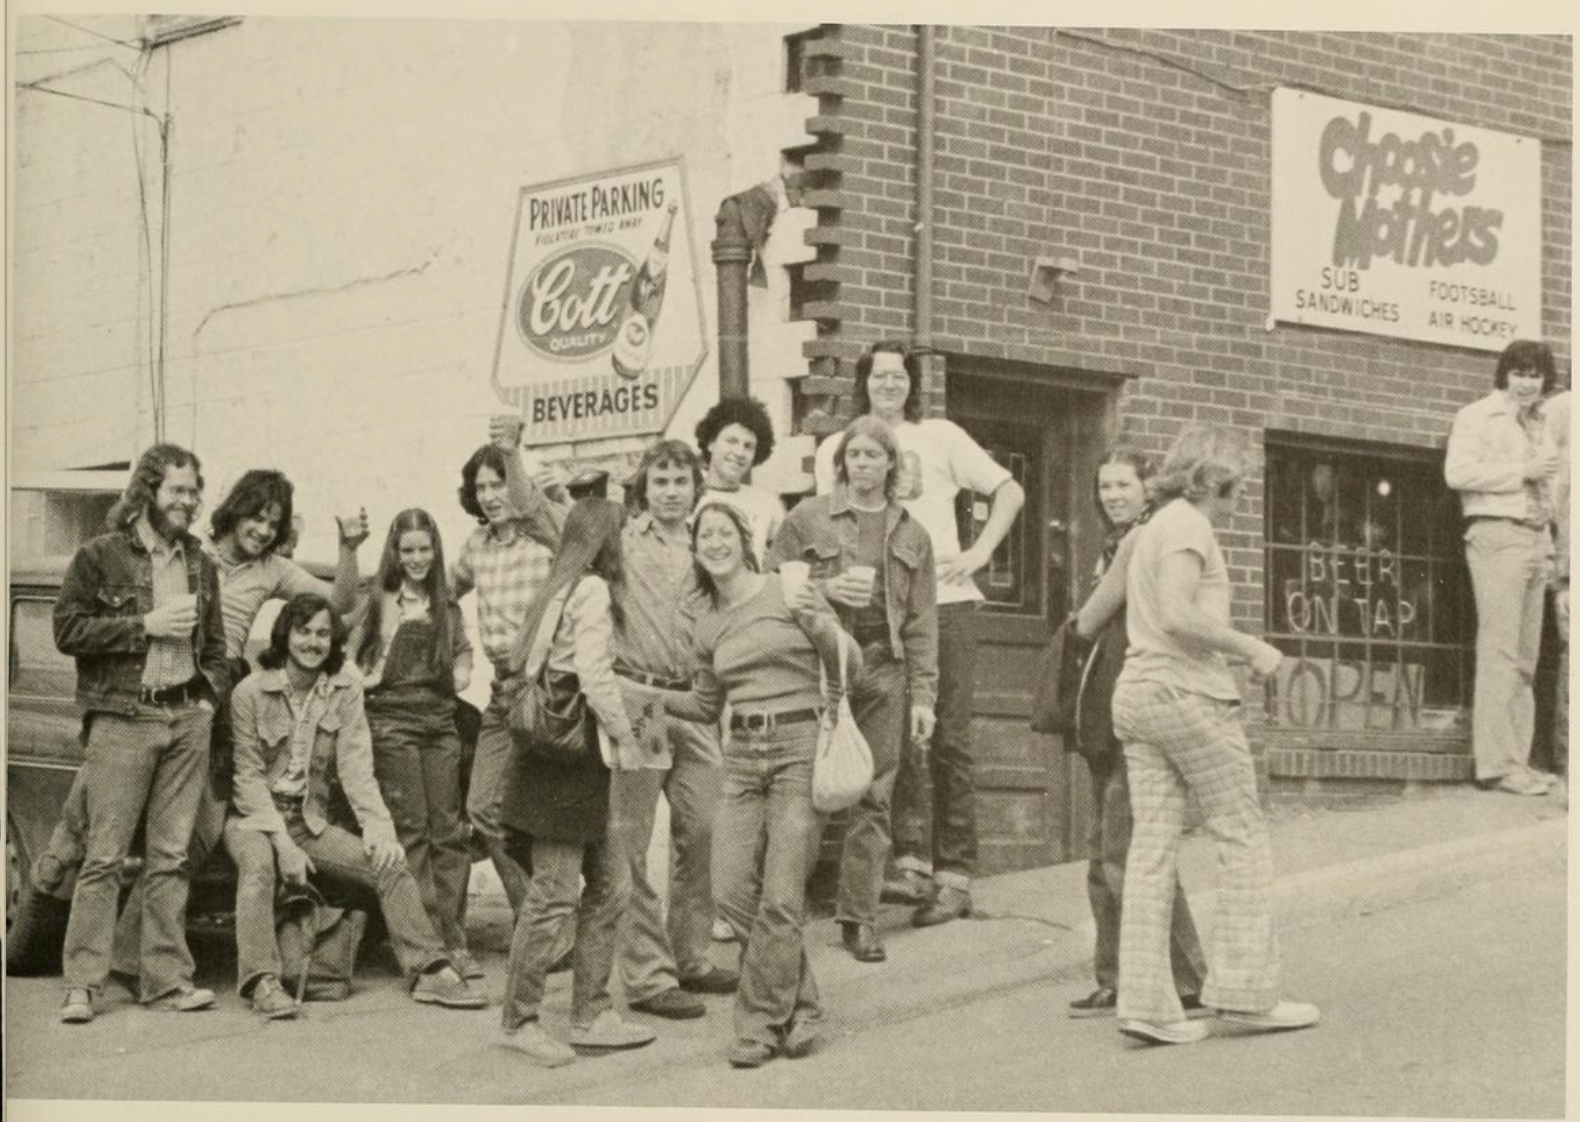 Sunnyside's restaurants and pubs began catering to student interests, changing the business makeup of the neighborhood. Here, students gather outside a pub in Sunnyside called Choosie Mothers. WVU Monticola, 1978.